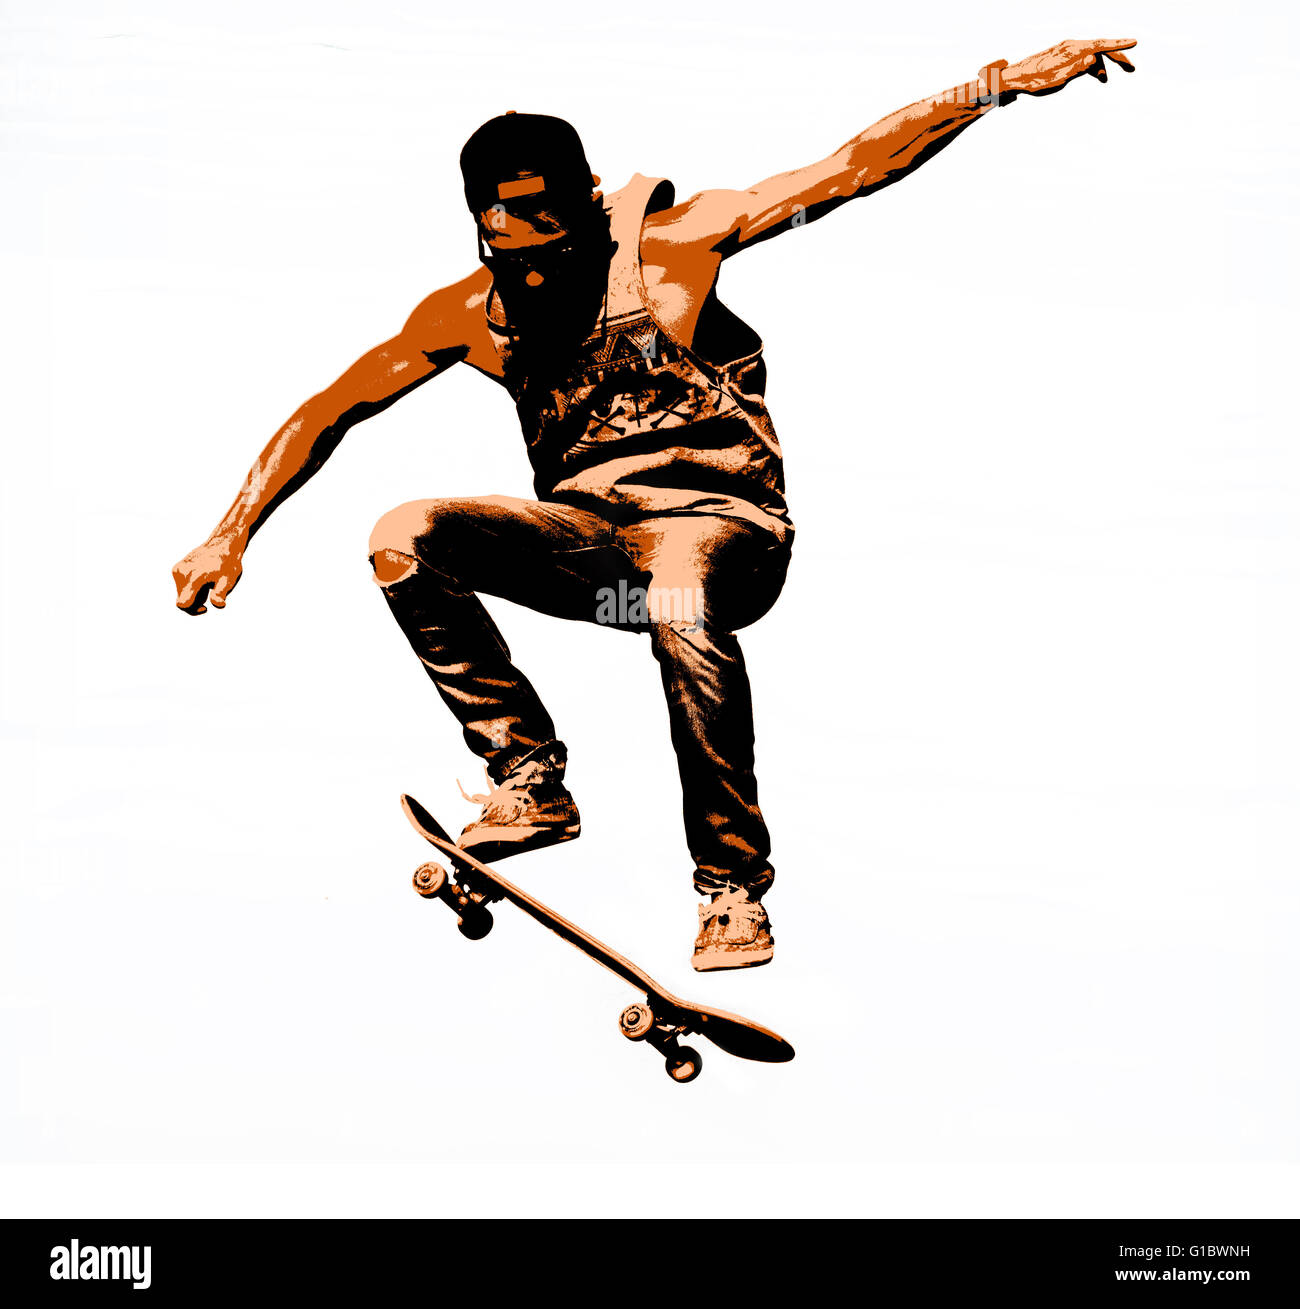 Skateboarder leaping in the air - Stock Image